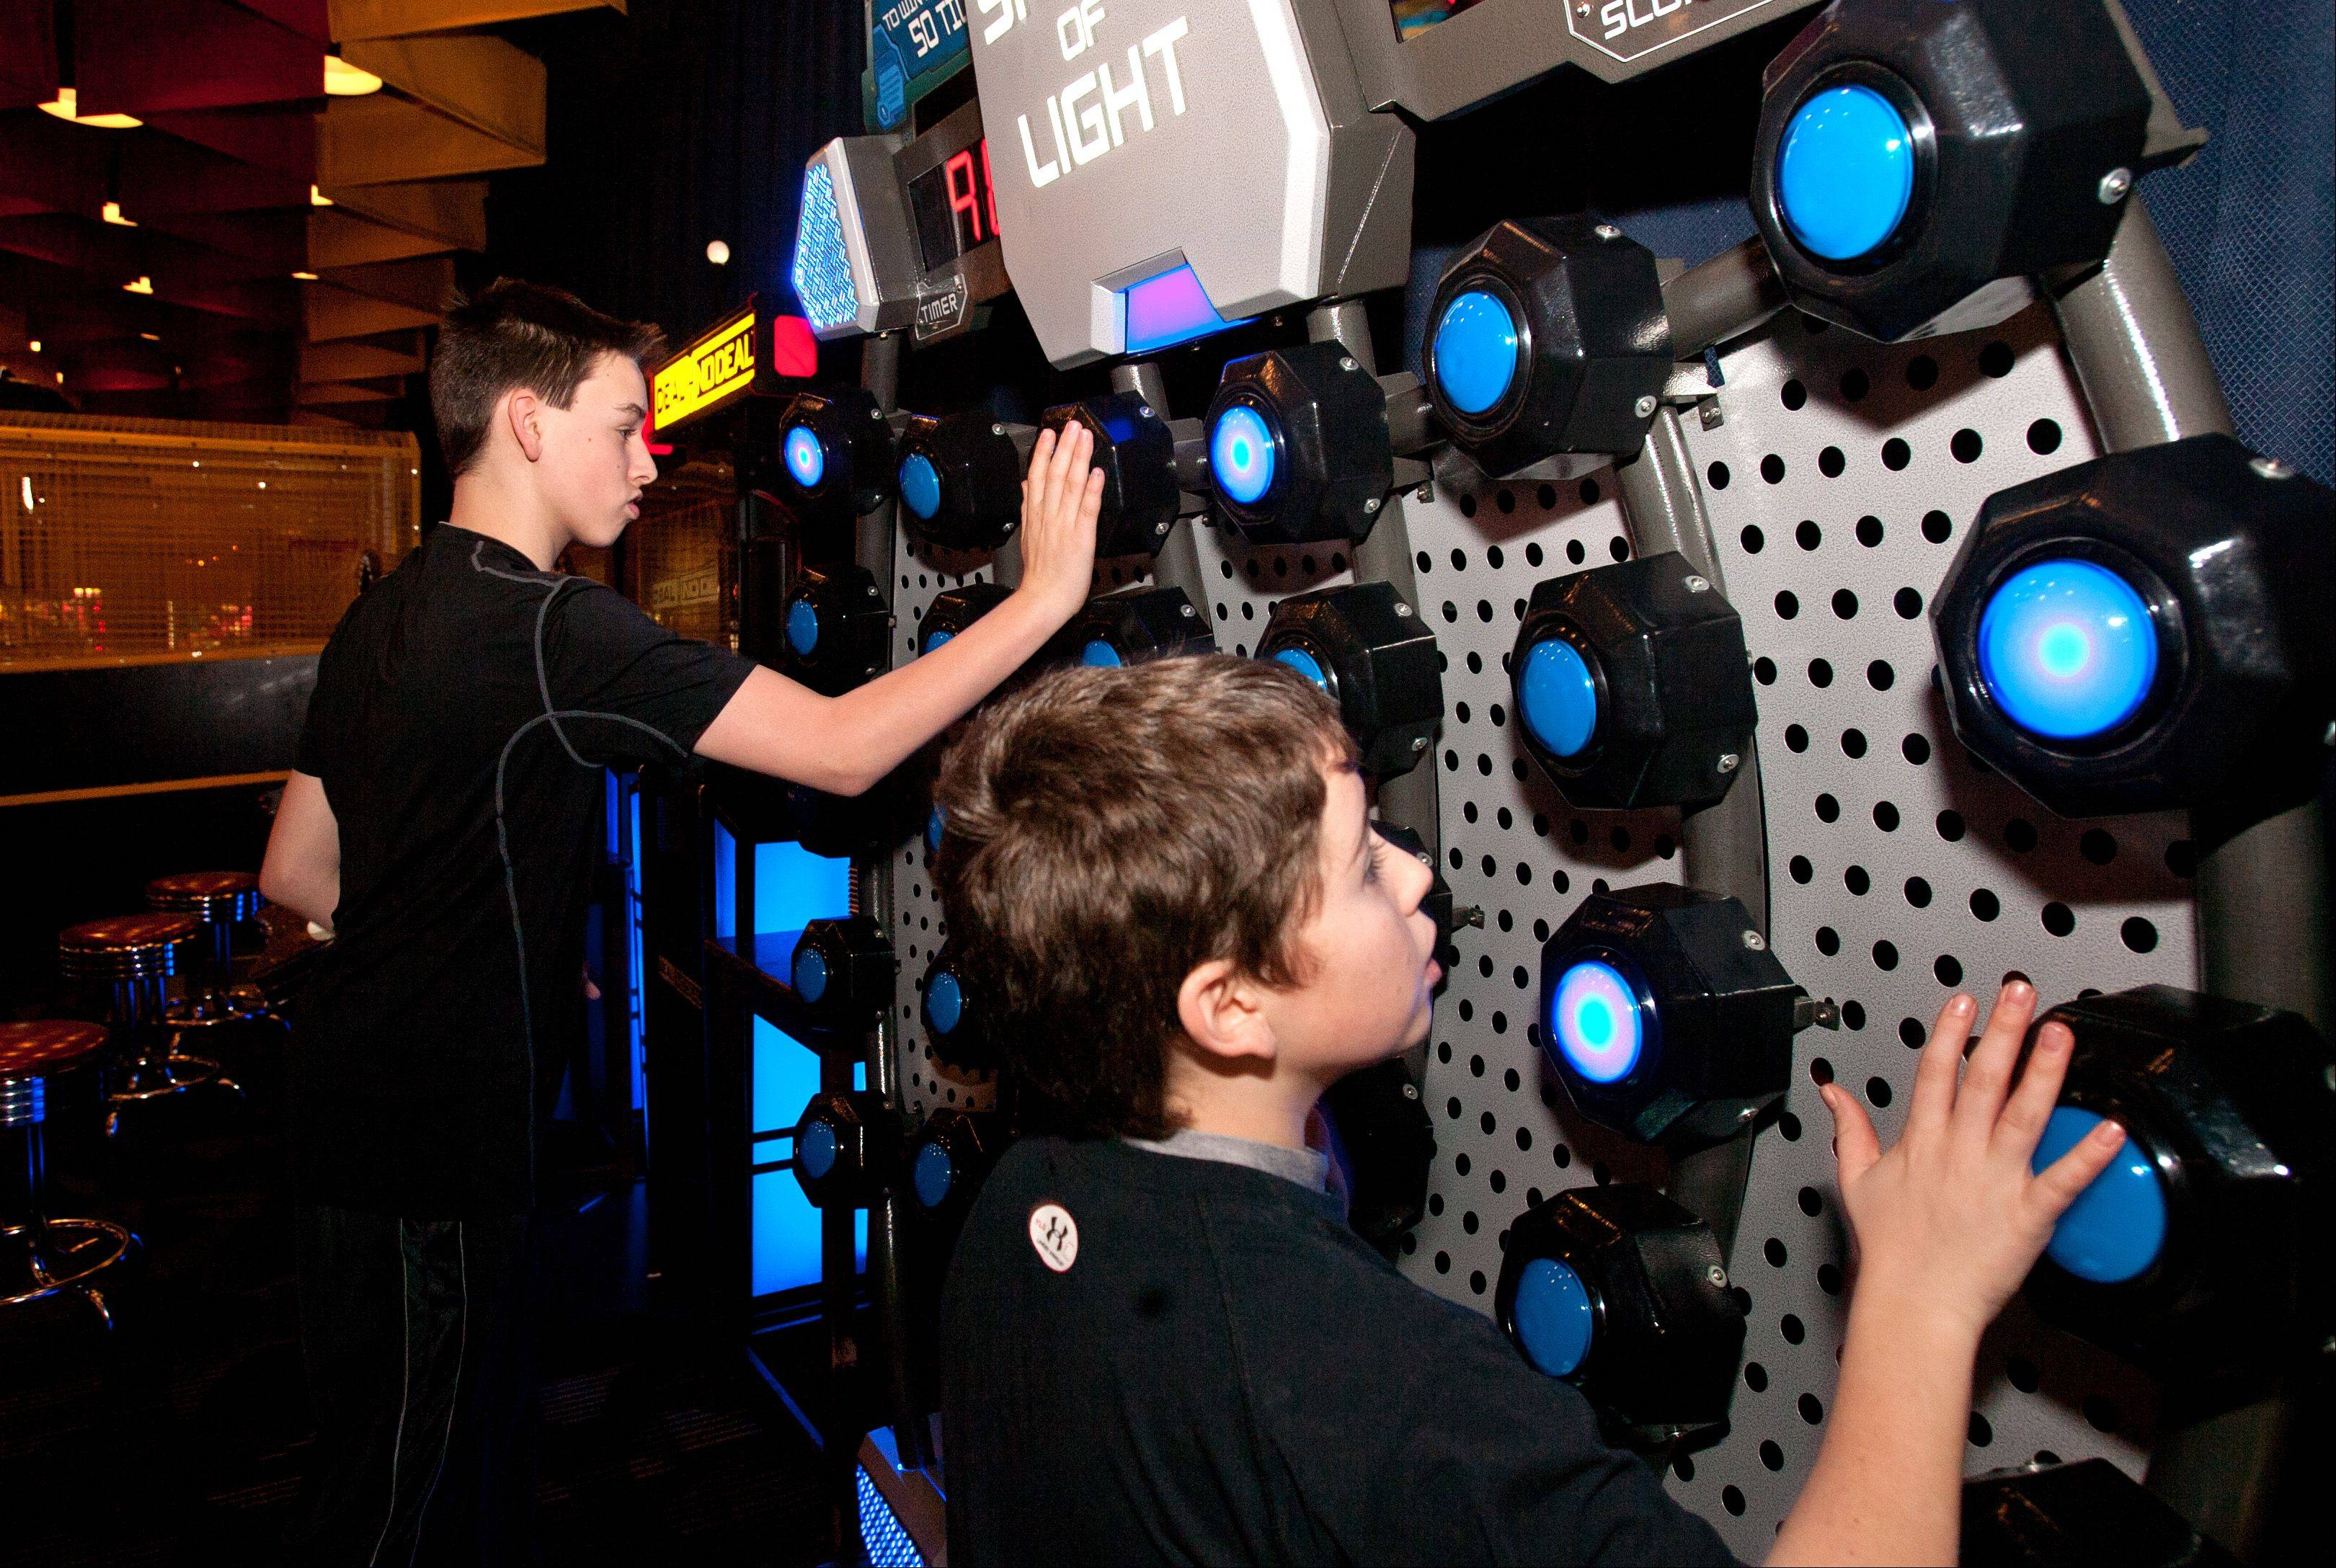 Andrew Gorski, 12, of Plainfield, left, and Griffin Coleman, 12, of Plainfield, right, play Speed of Light at Dave and Buster's in Addison.